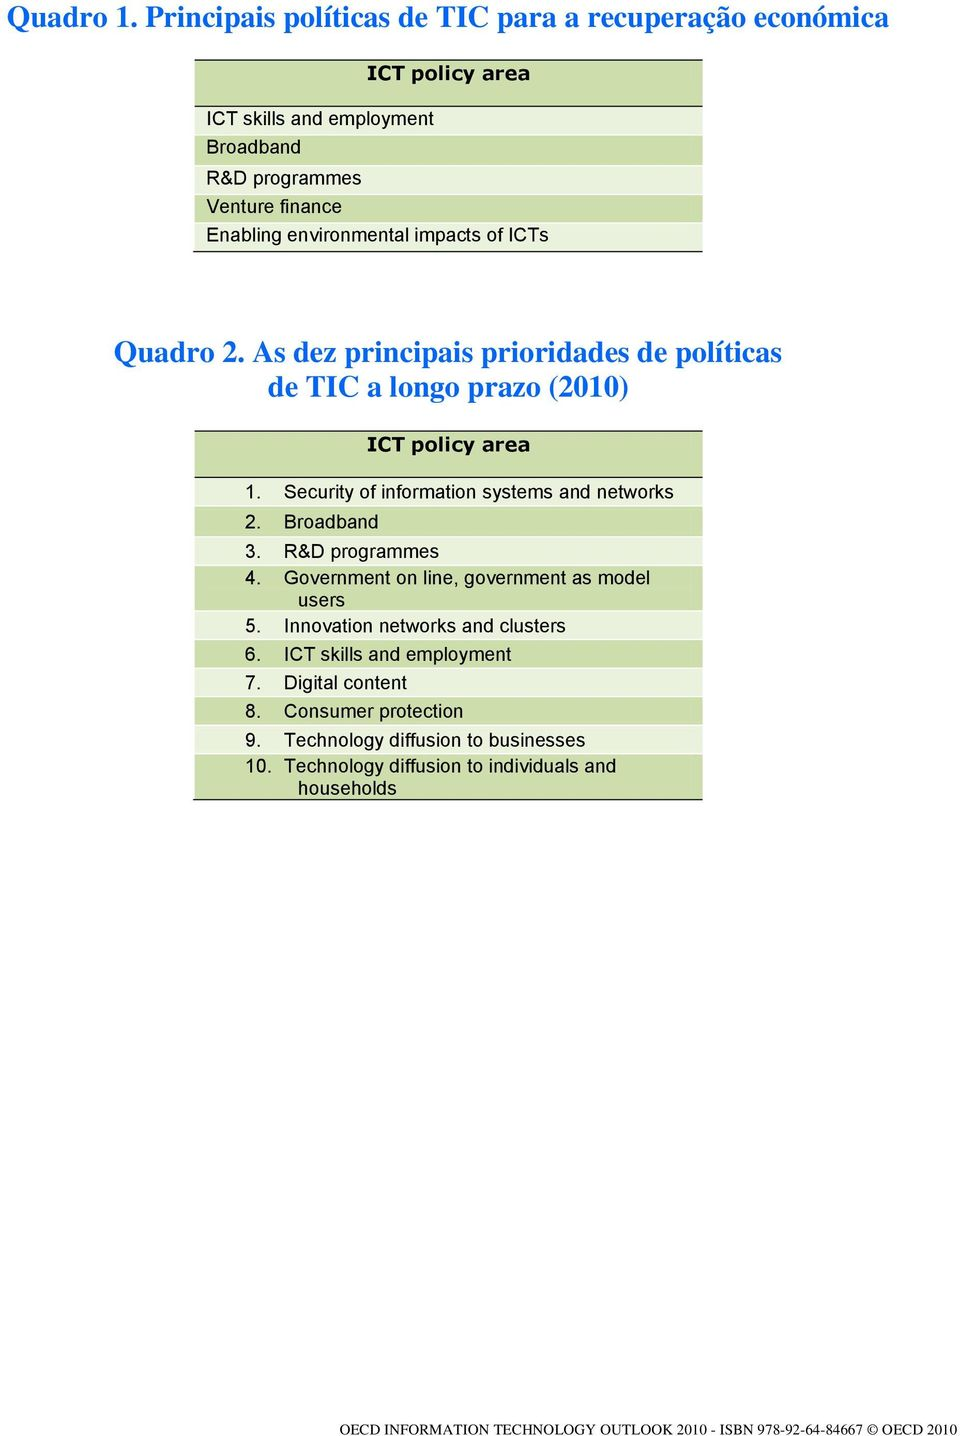 of ICTs Quadro 2. As dez principais prioridades de políticas de TIC a longo prazo (2010) ICT policy area 1. Security of information systems and networks 2. Broadband 3.